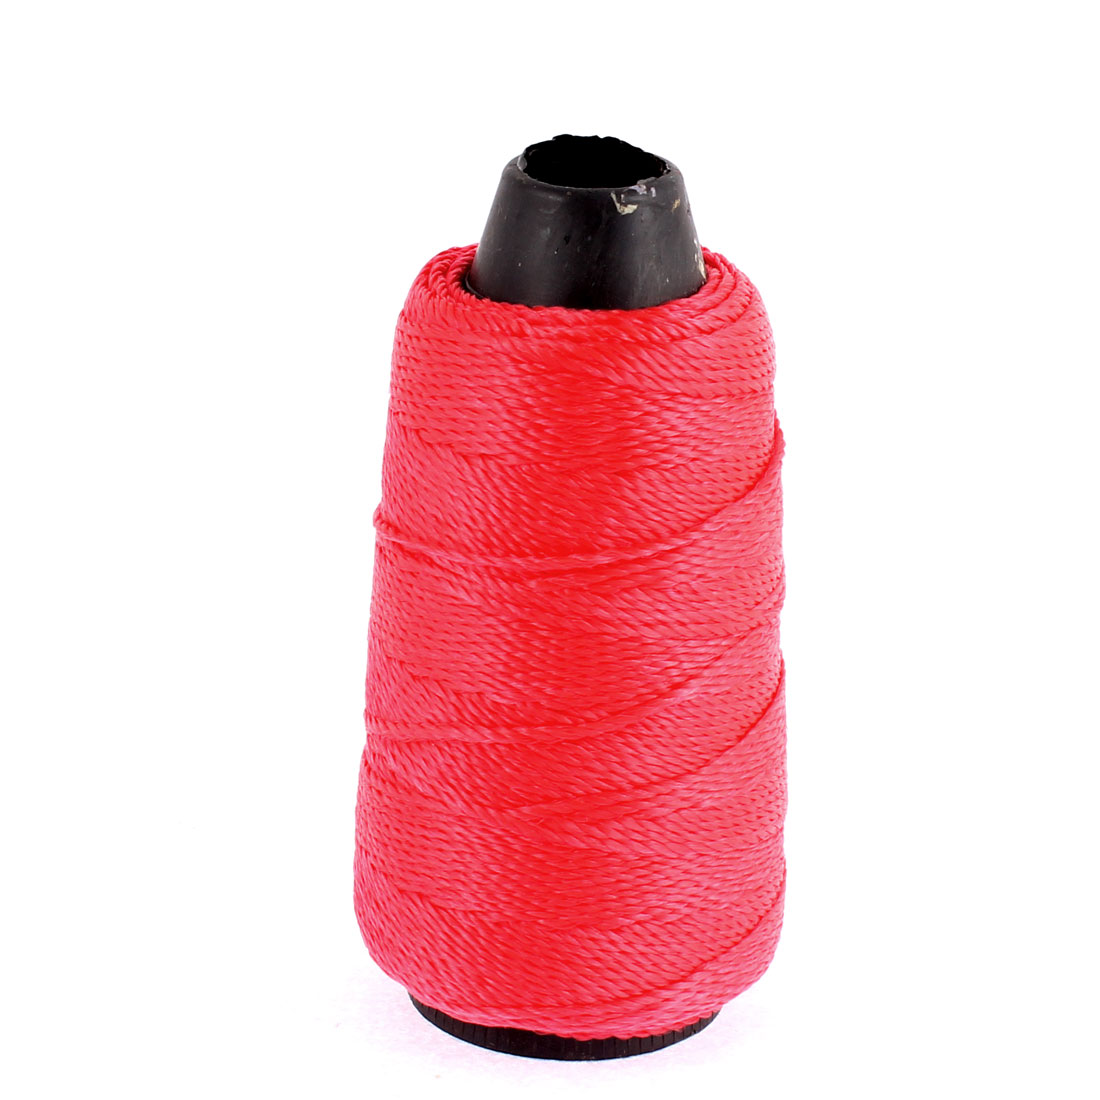 Unique Bargains Household Construction Tailoring Crafting Yarn String Spool Thread Reel